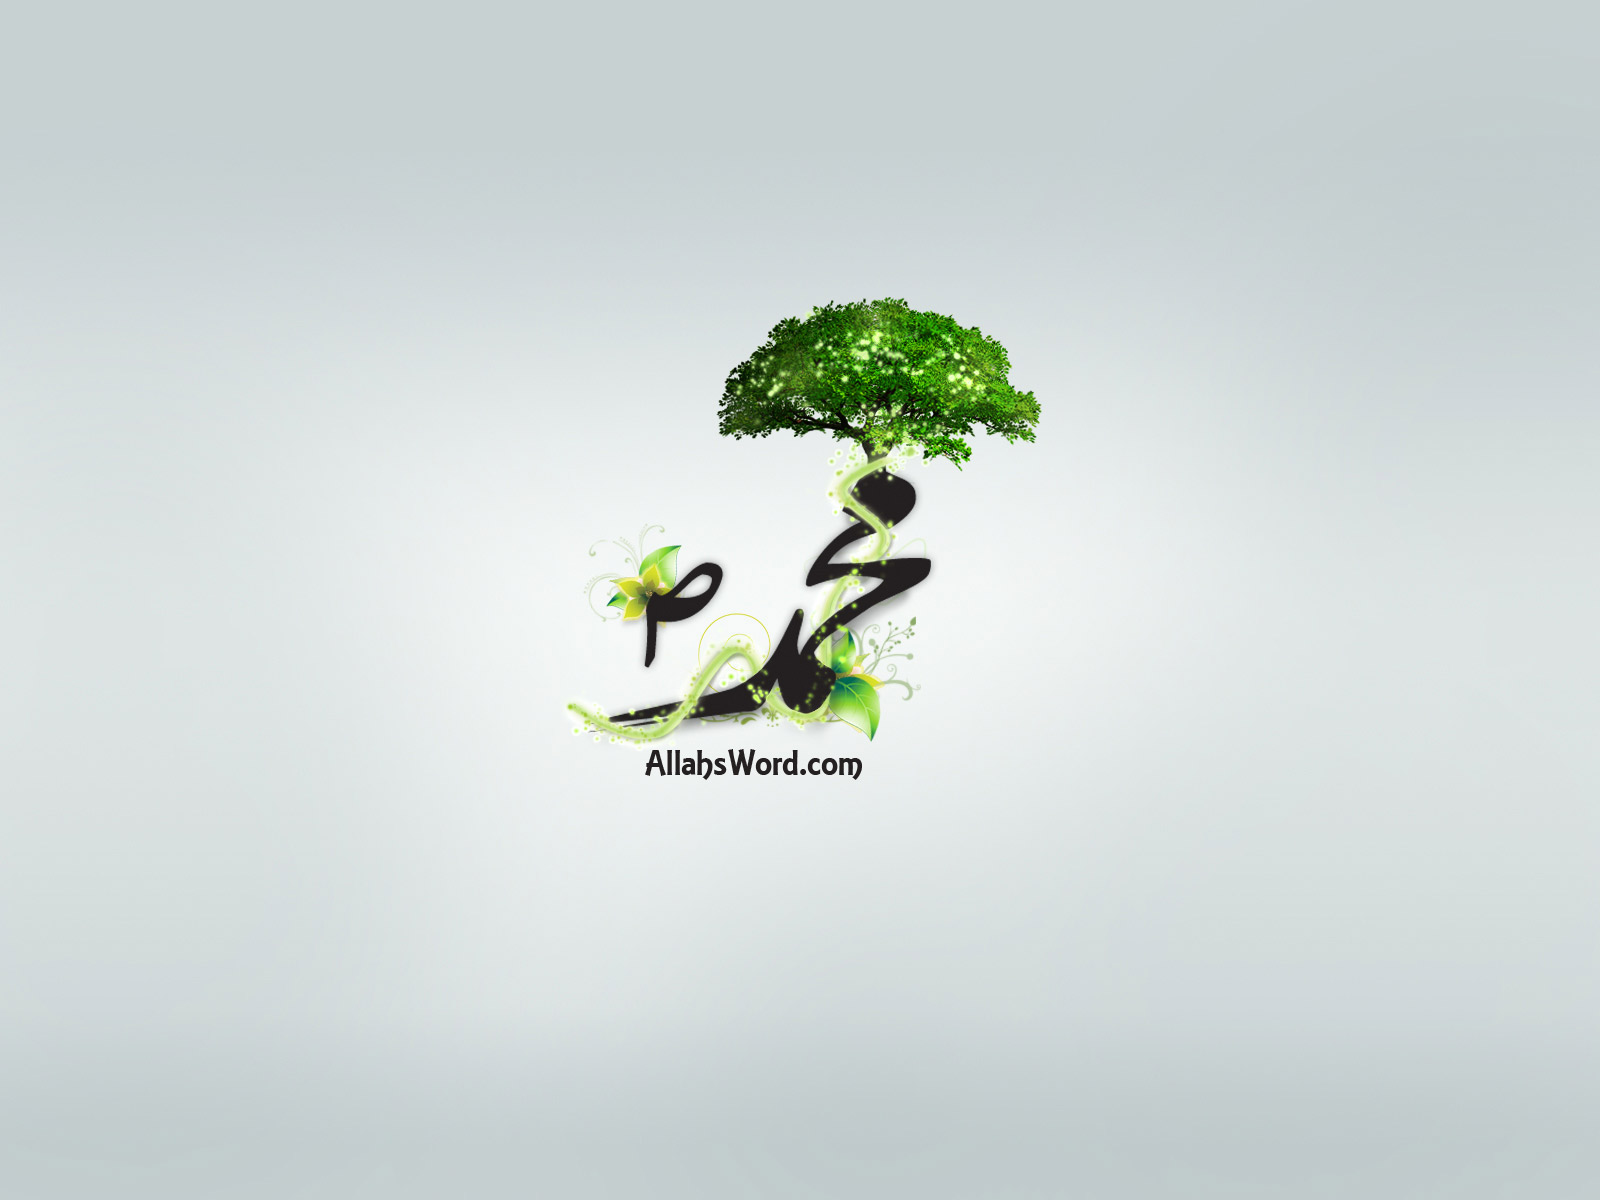 Prophet Muhammad Name Tree Wallpaper